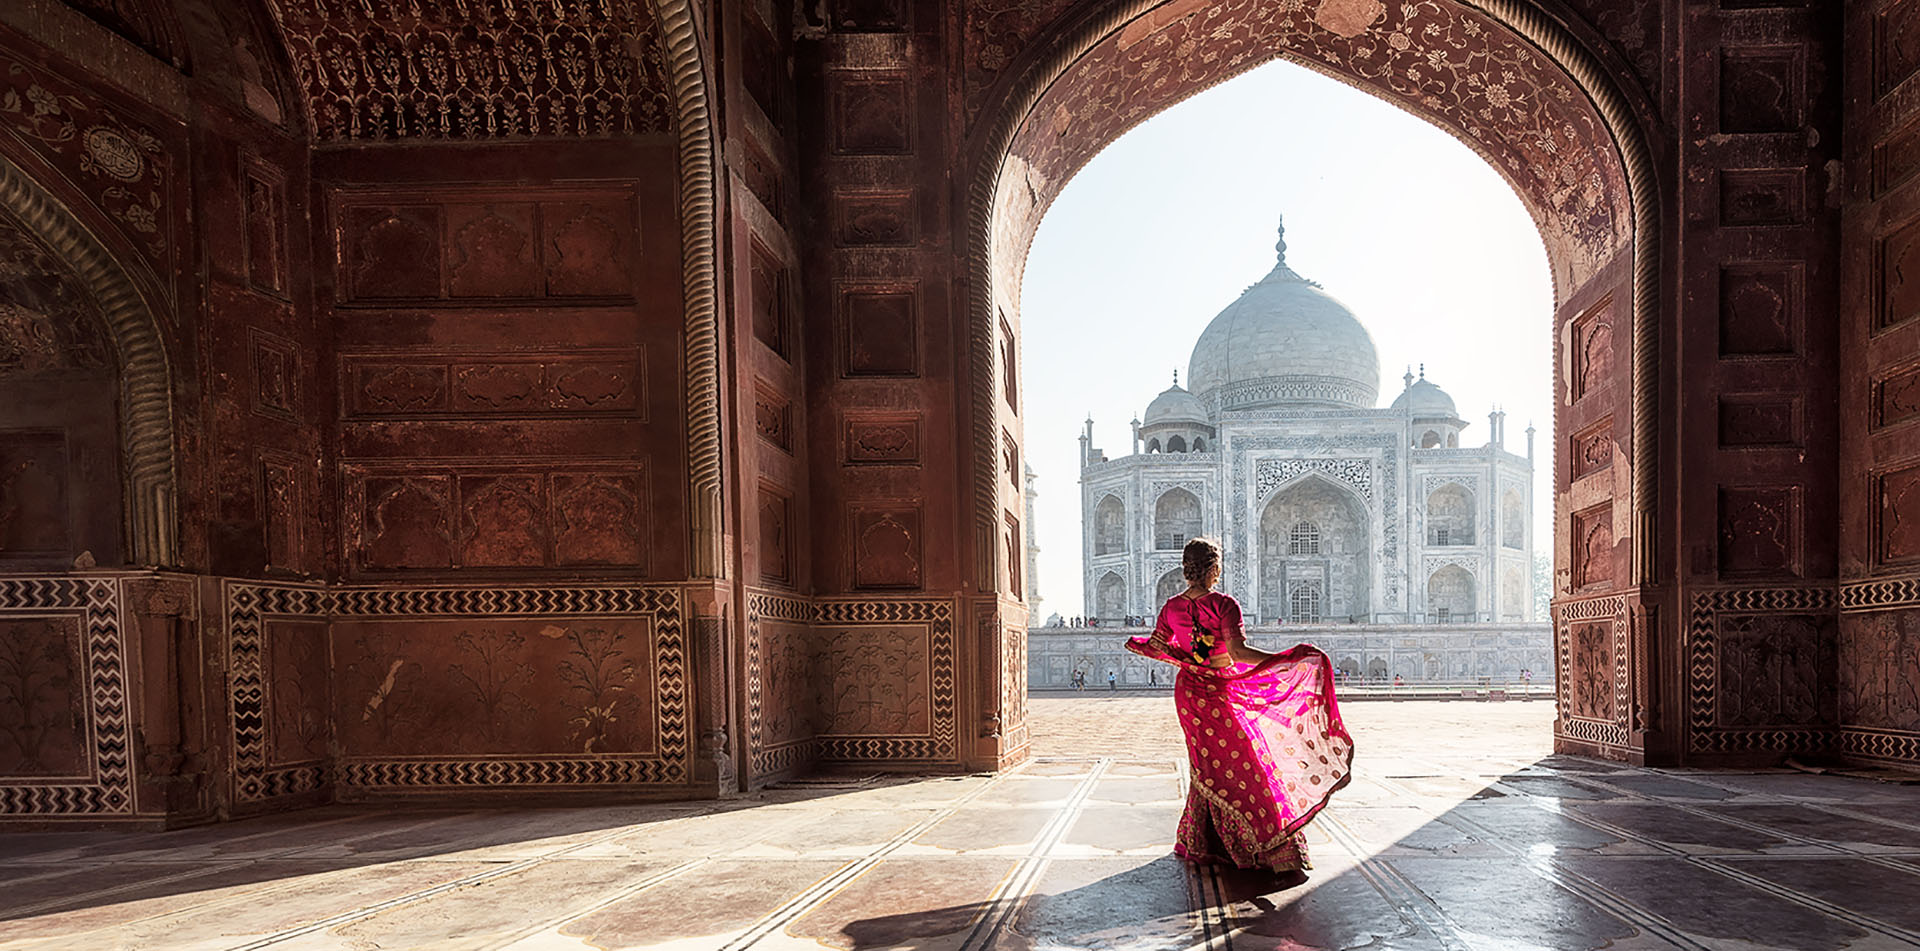 Women by Taj Mahal, India